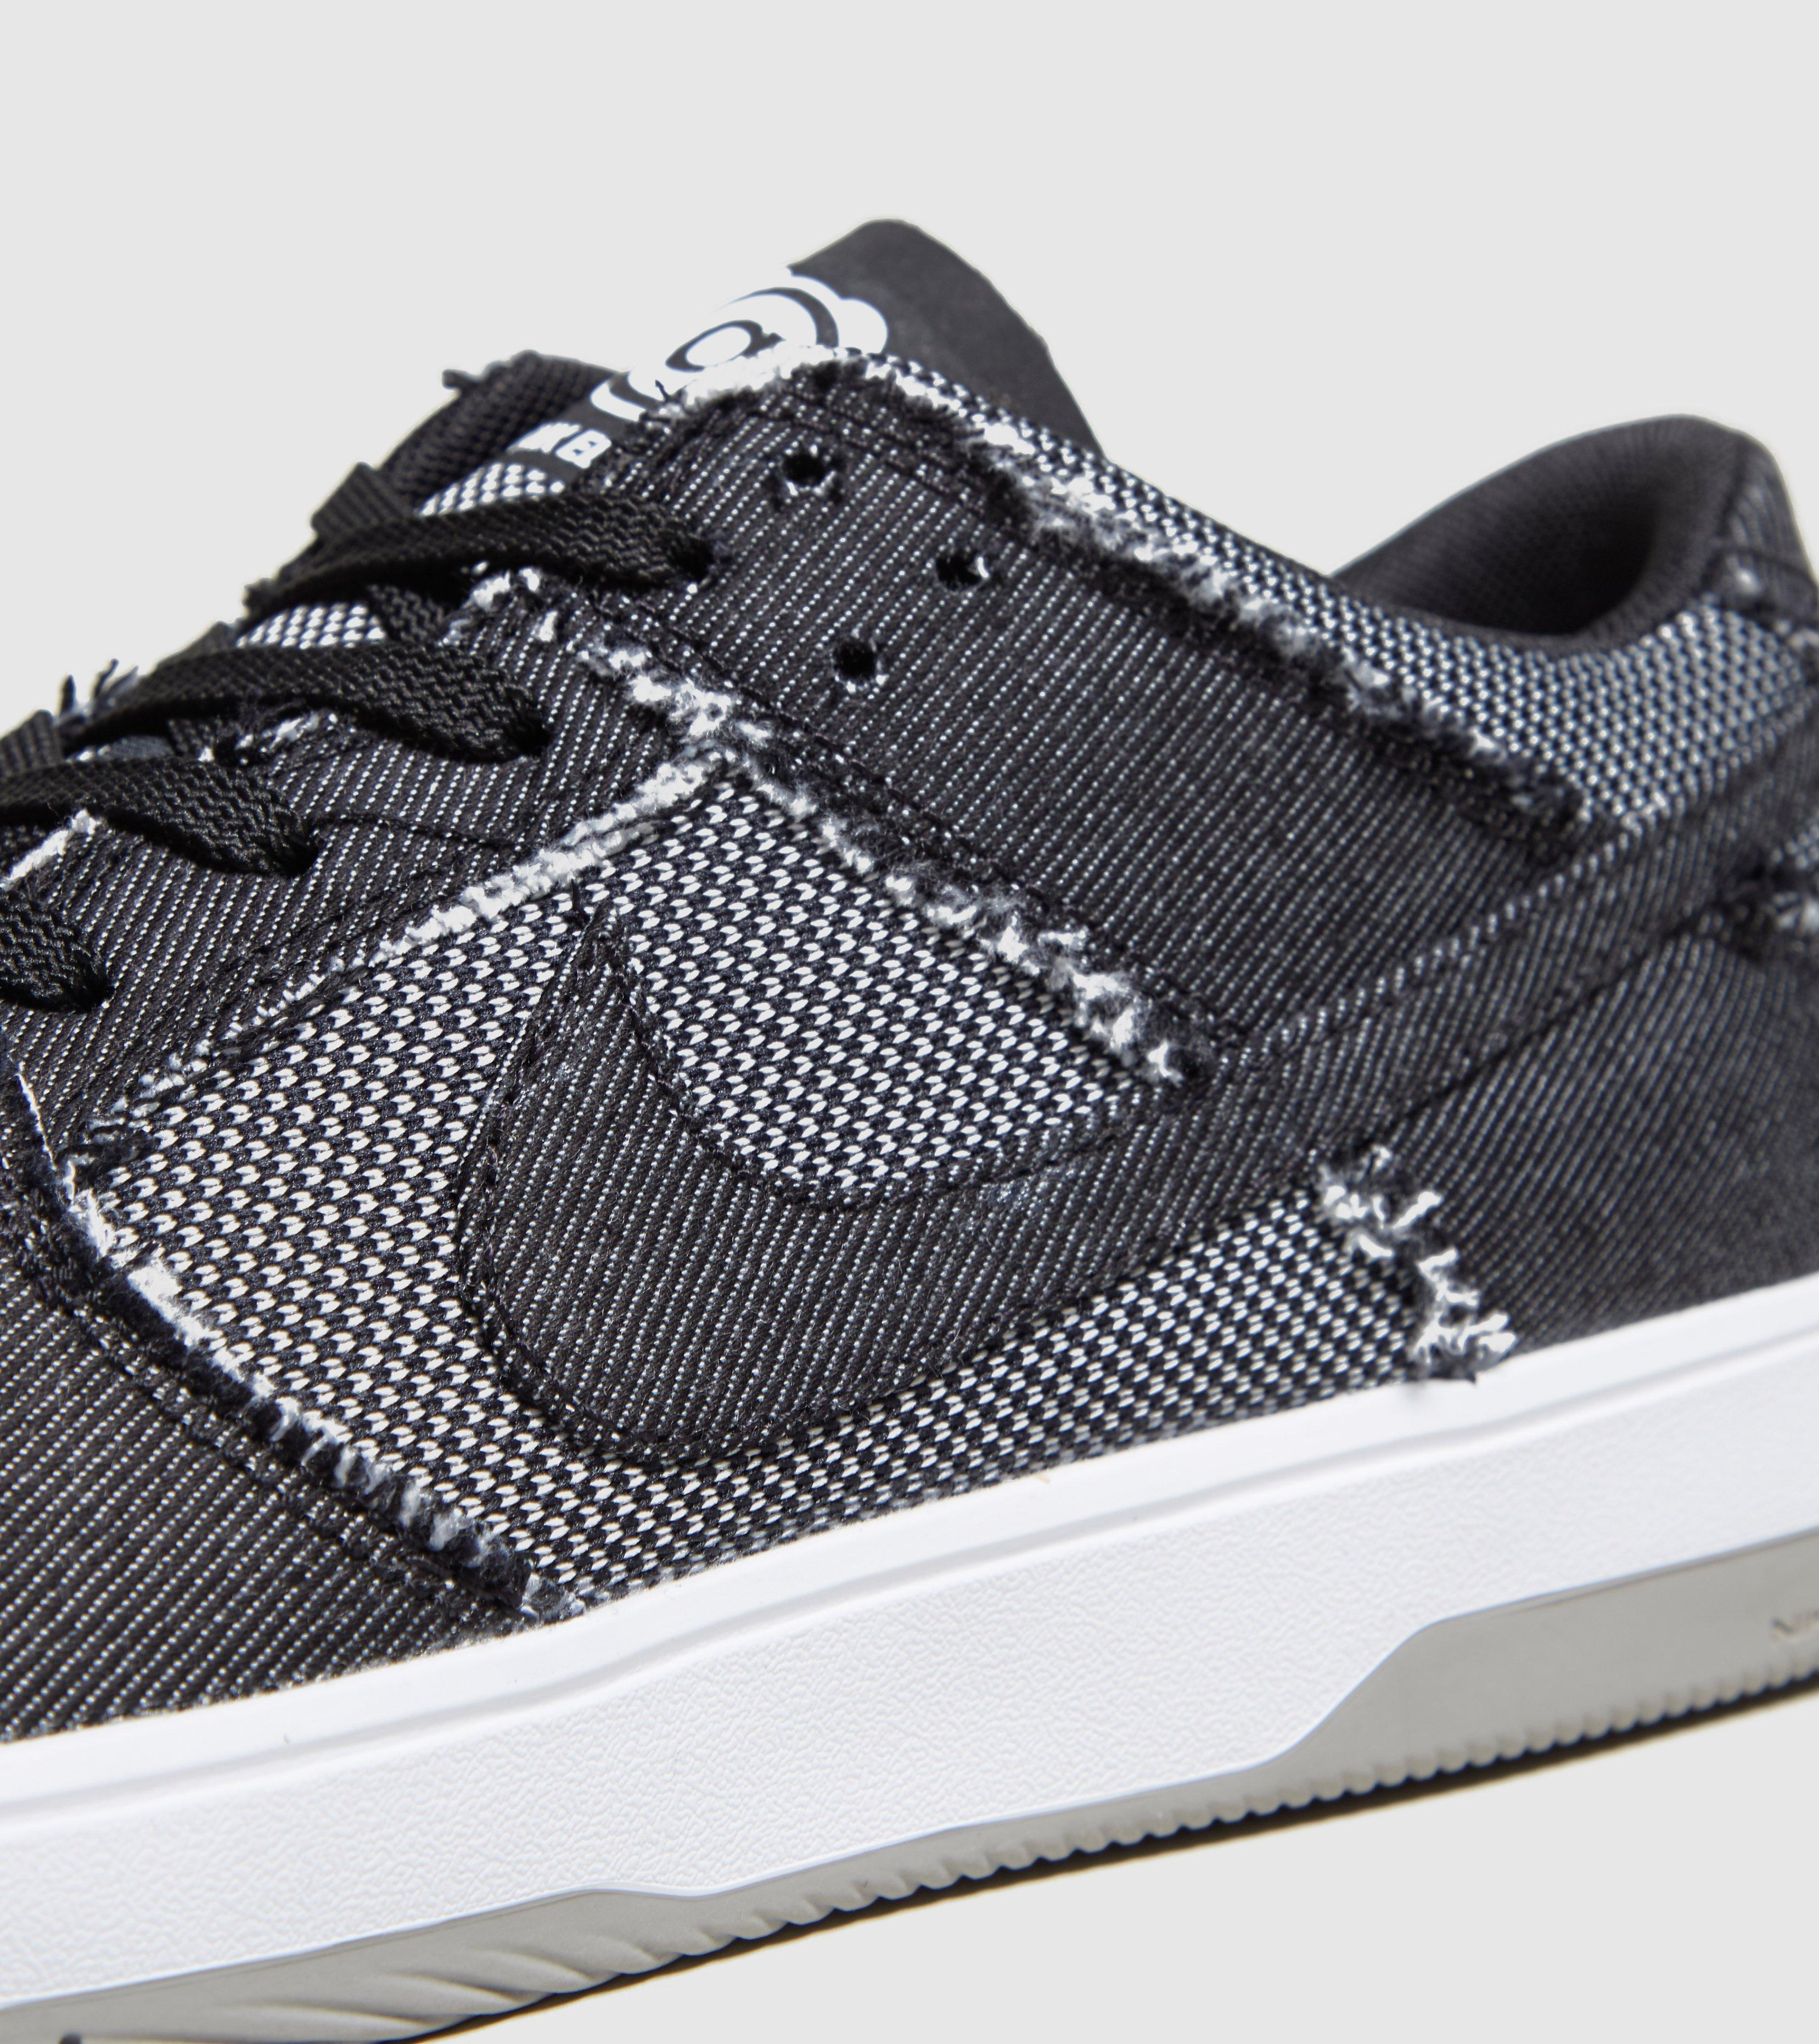 low priced 9a61f 3e5e2 Lyst - Nike X Medicom Dunk Low Elite in Black for Men